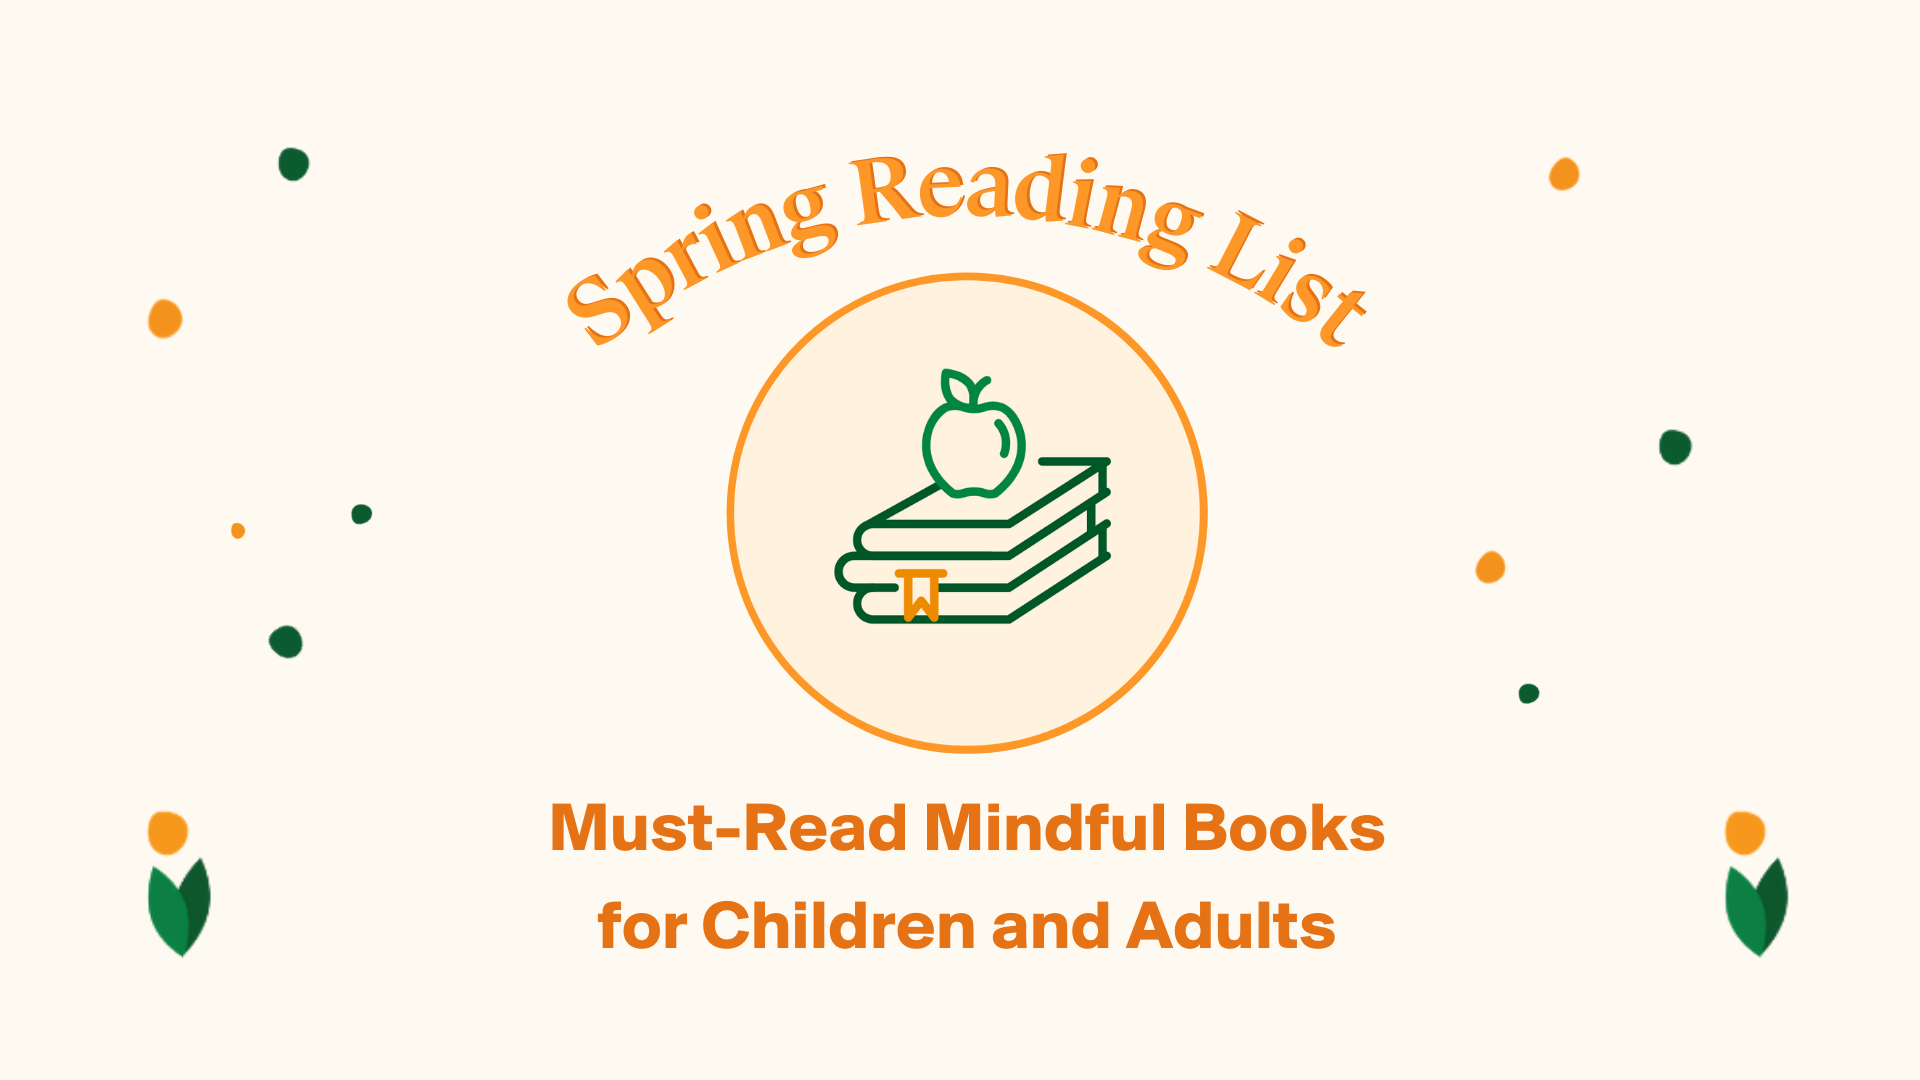 Must-Read Mindful Books for Children and Adults